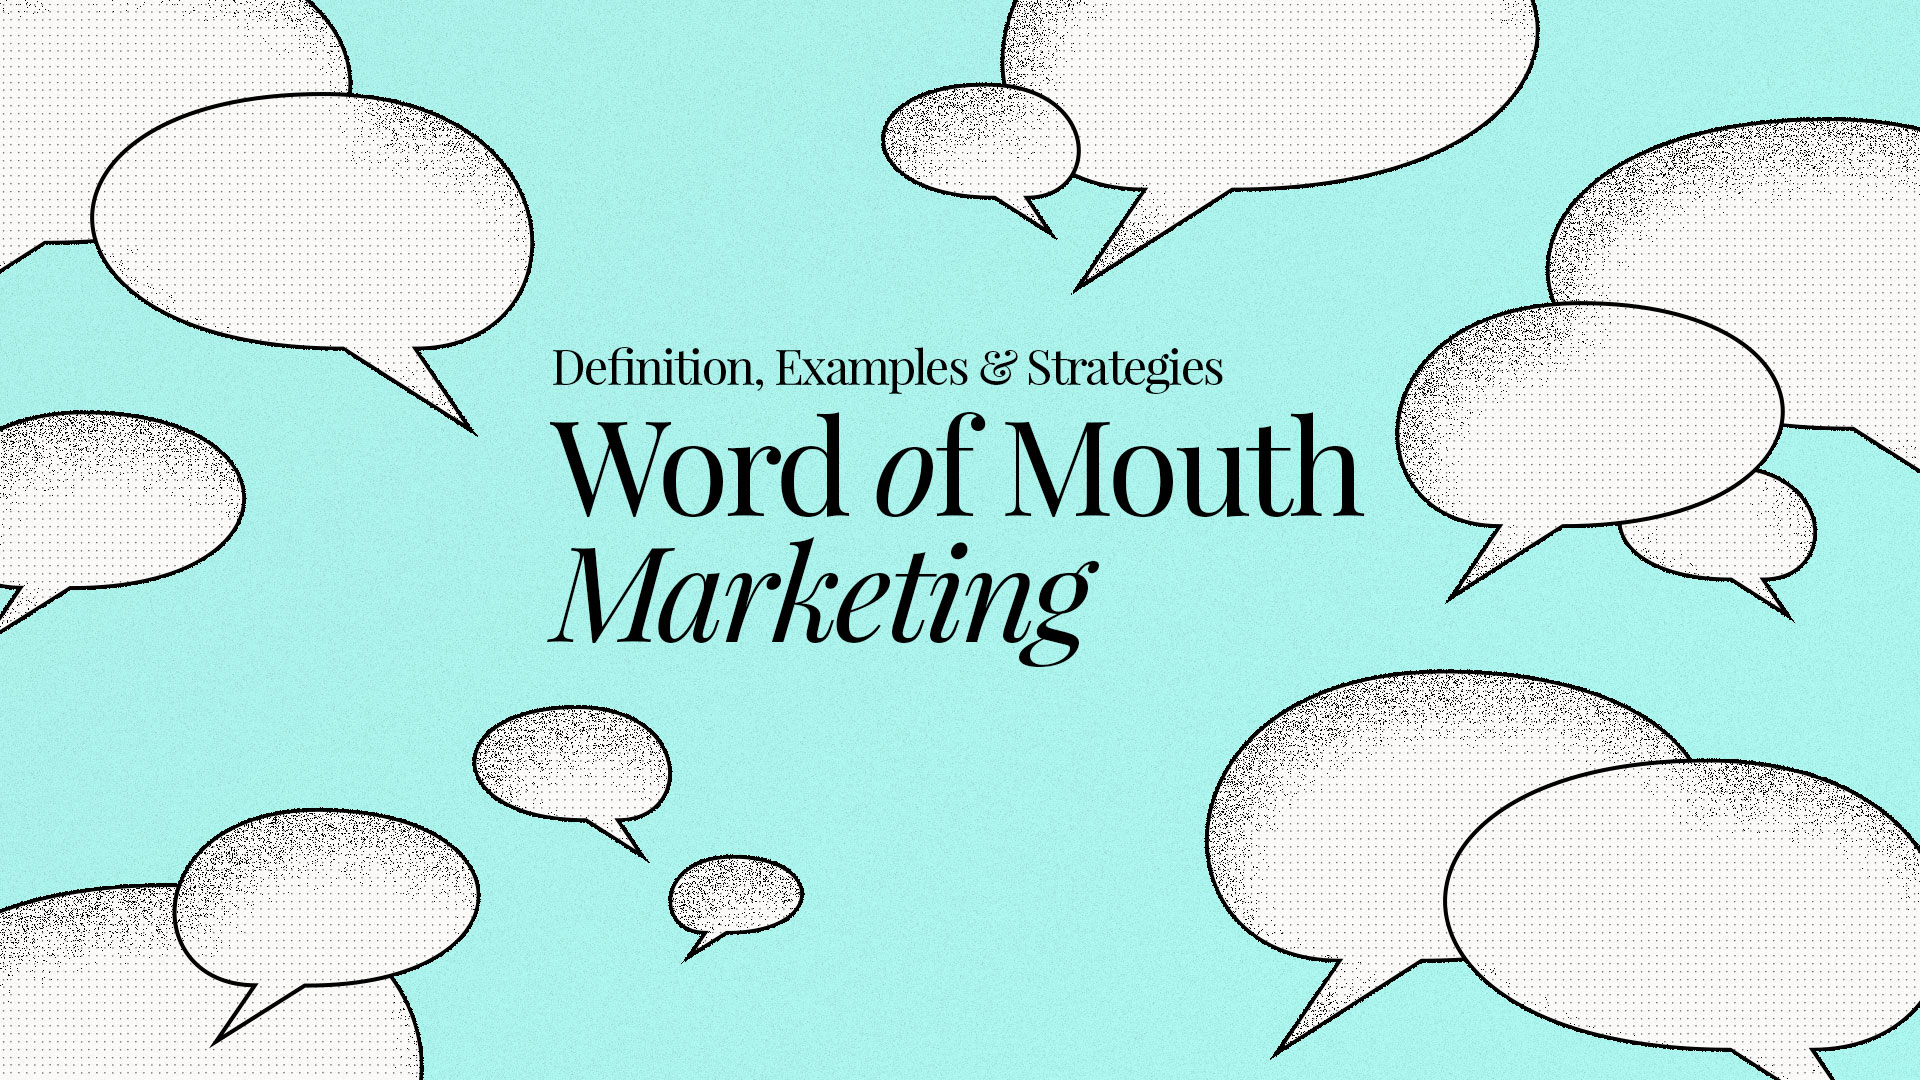 Word of Mouth Marketing: Definition, Examples & Strategies